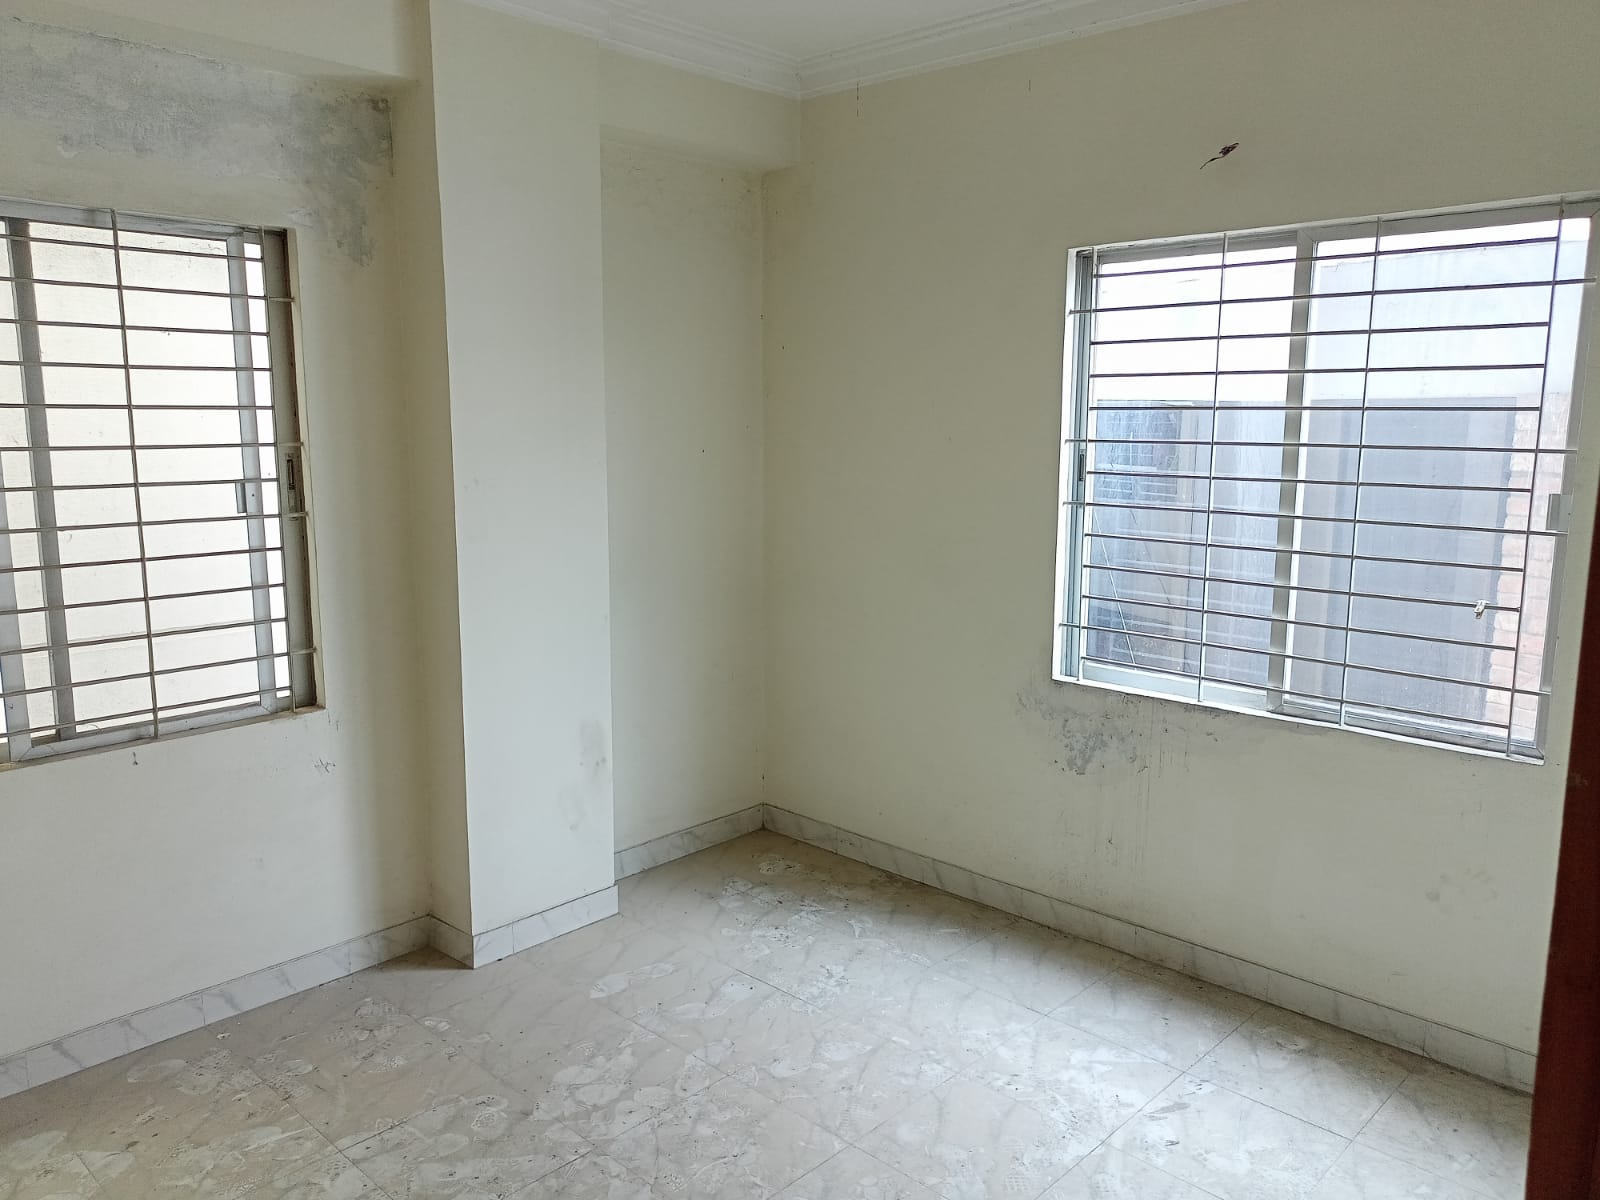 1669-sft-apartment-for-sale-in-green-road-8th-floor-505009